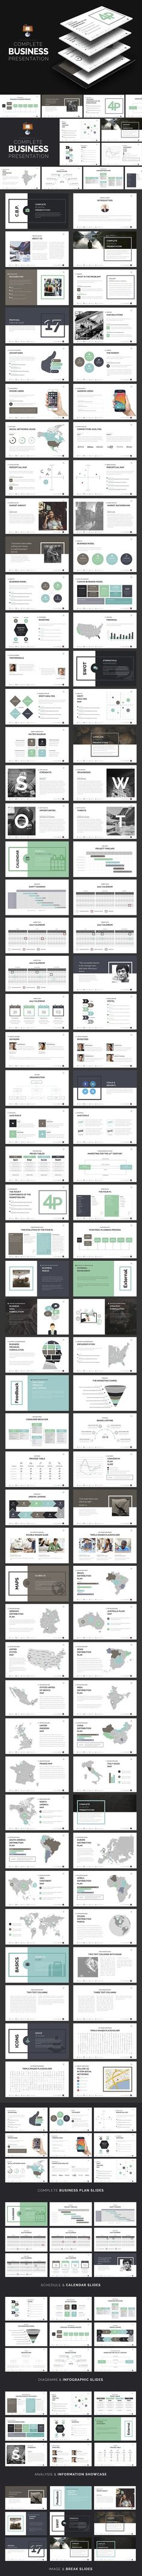 Business Keynote Presentation. Presentation Templates